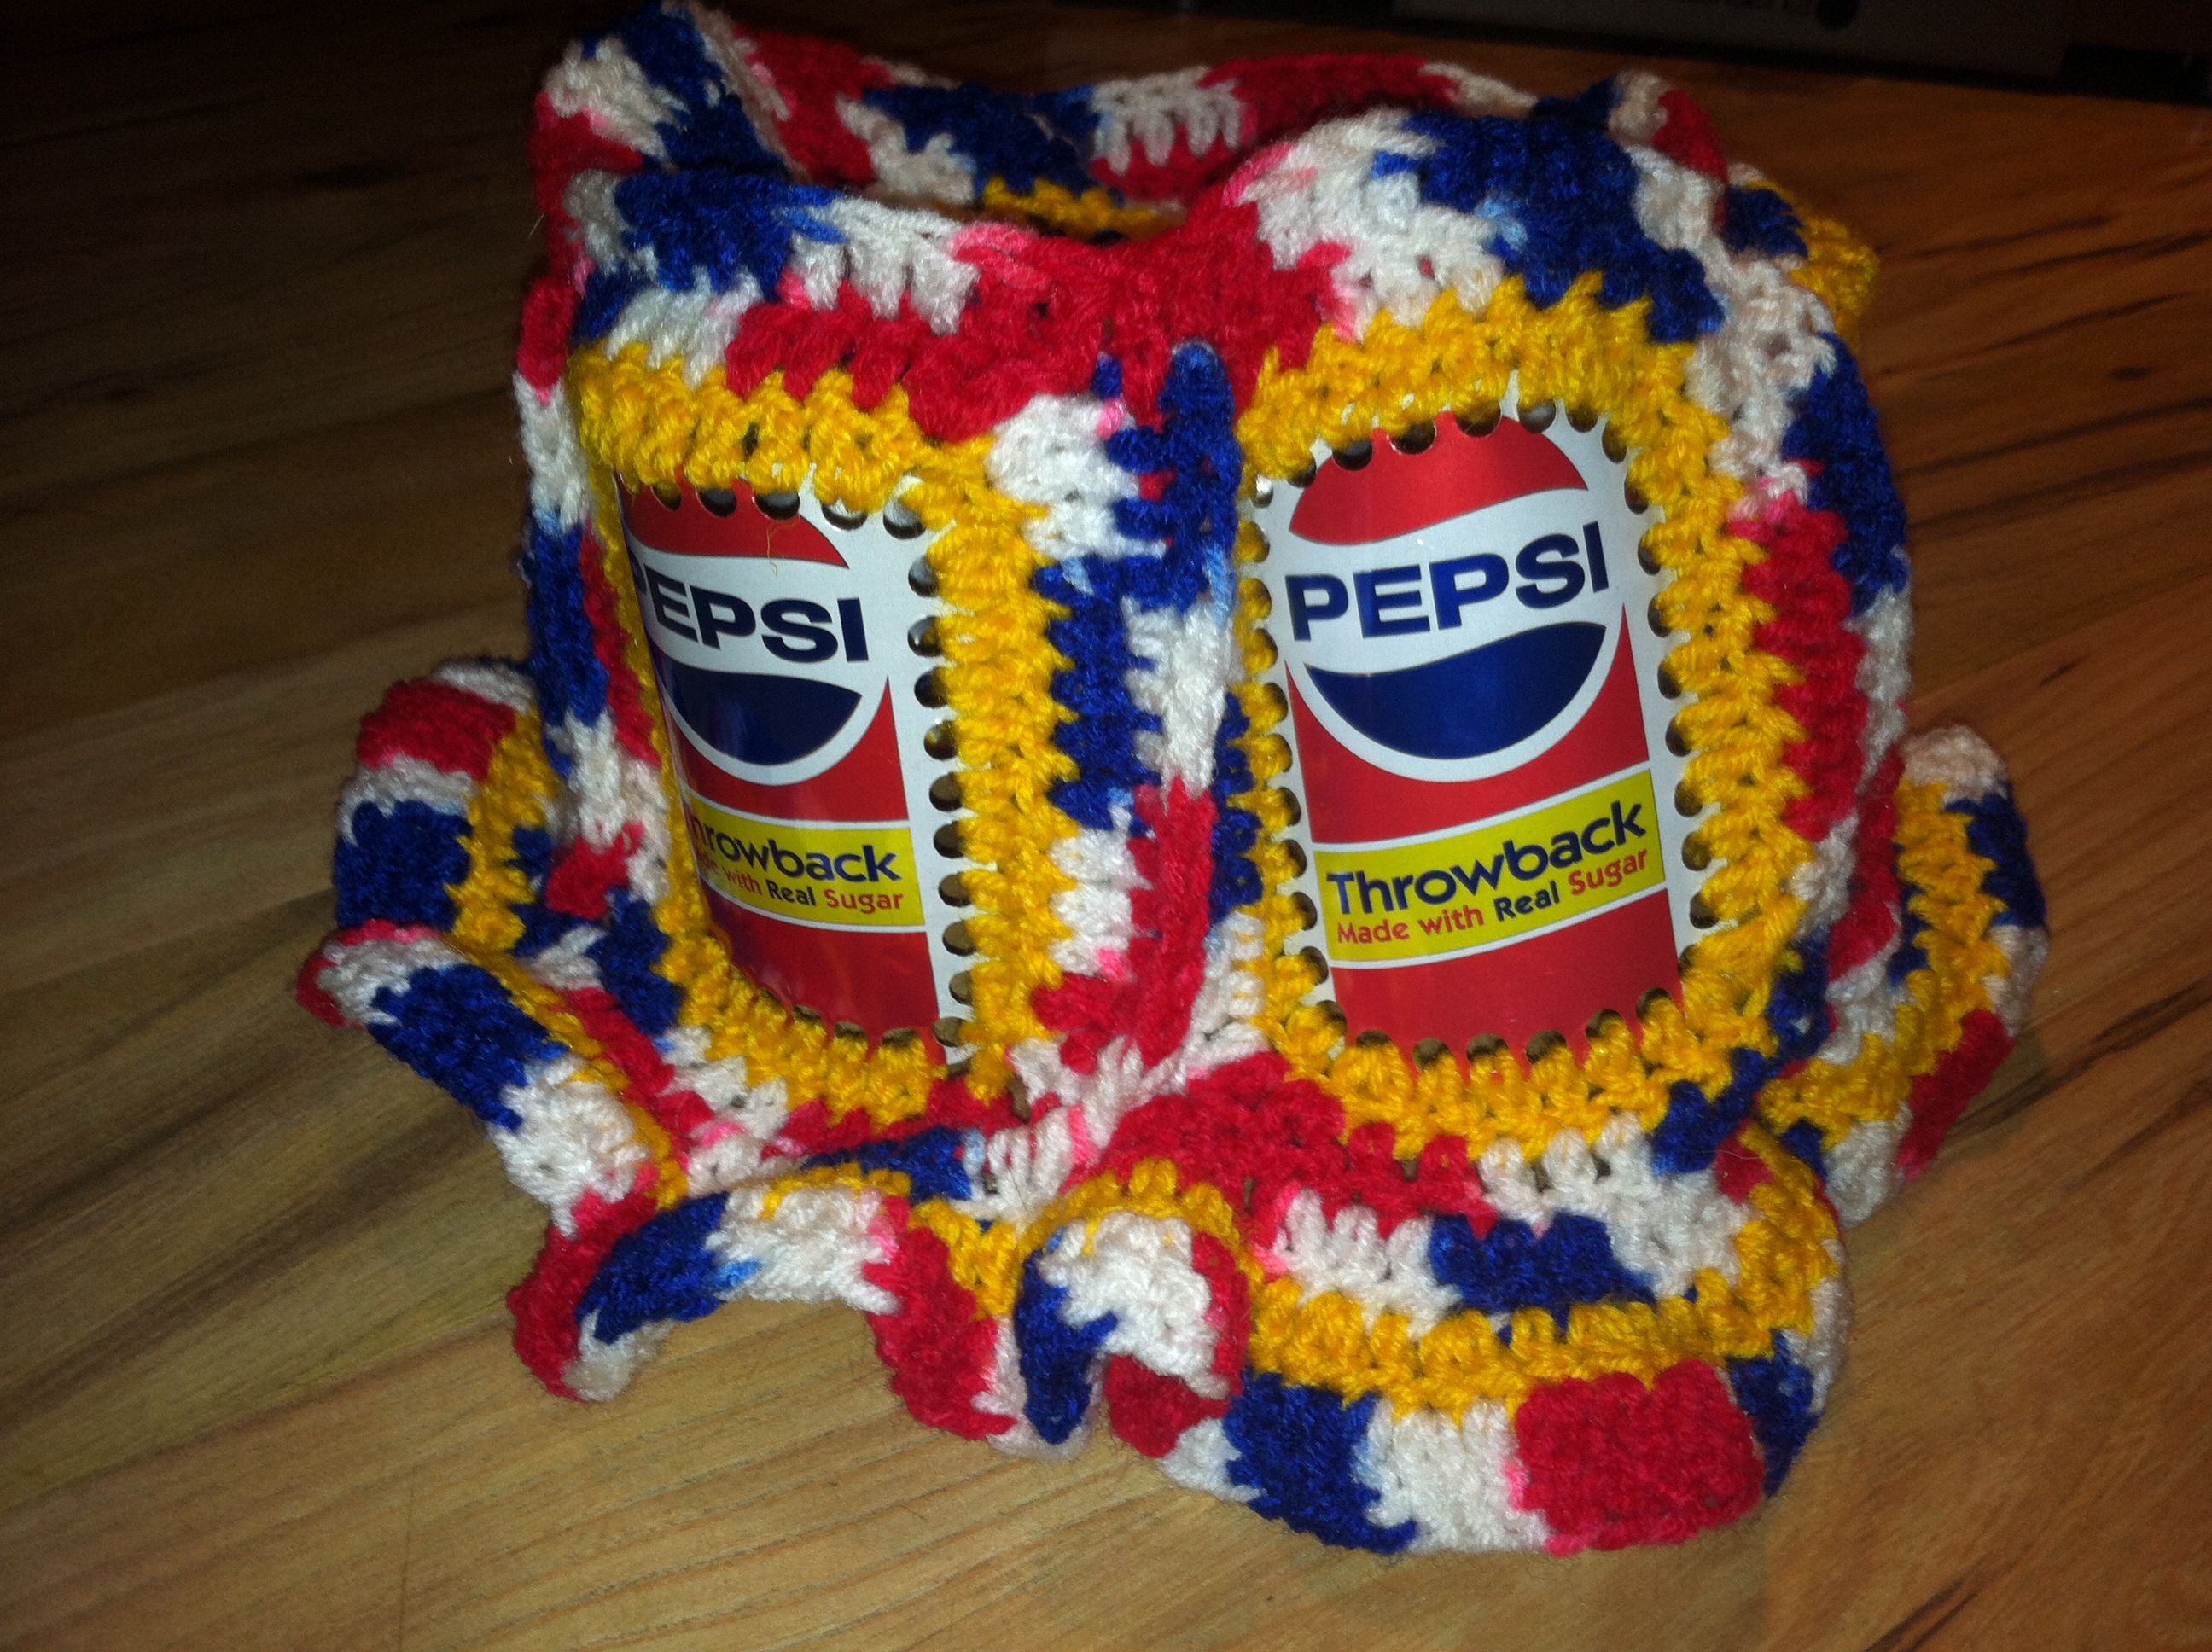 176cf91c6f3 This is my Pepsi Throwback can hat. I crocheted Pepsi Throwback cans  together. Love them.